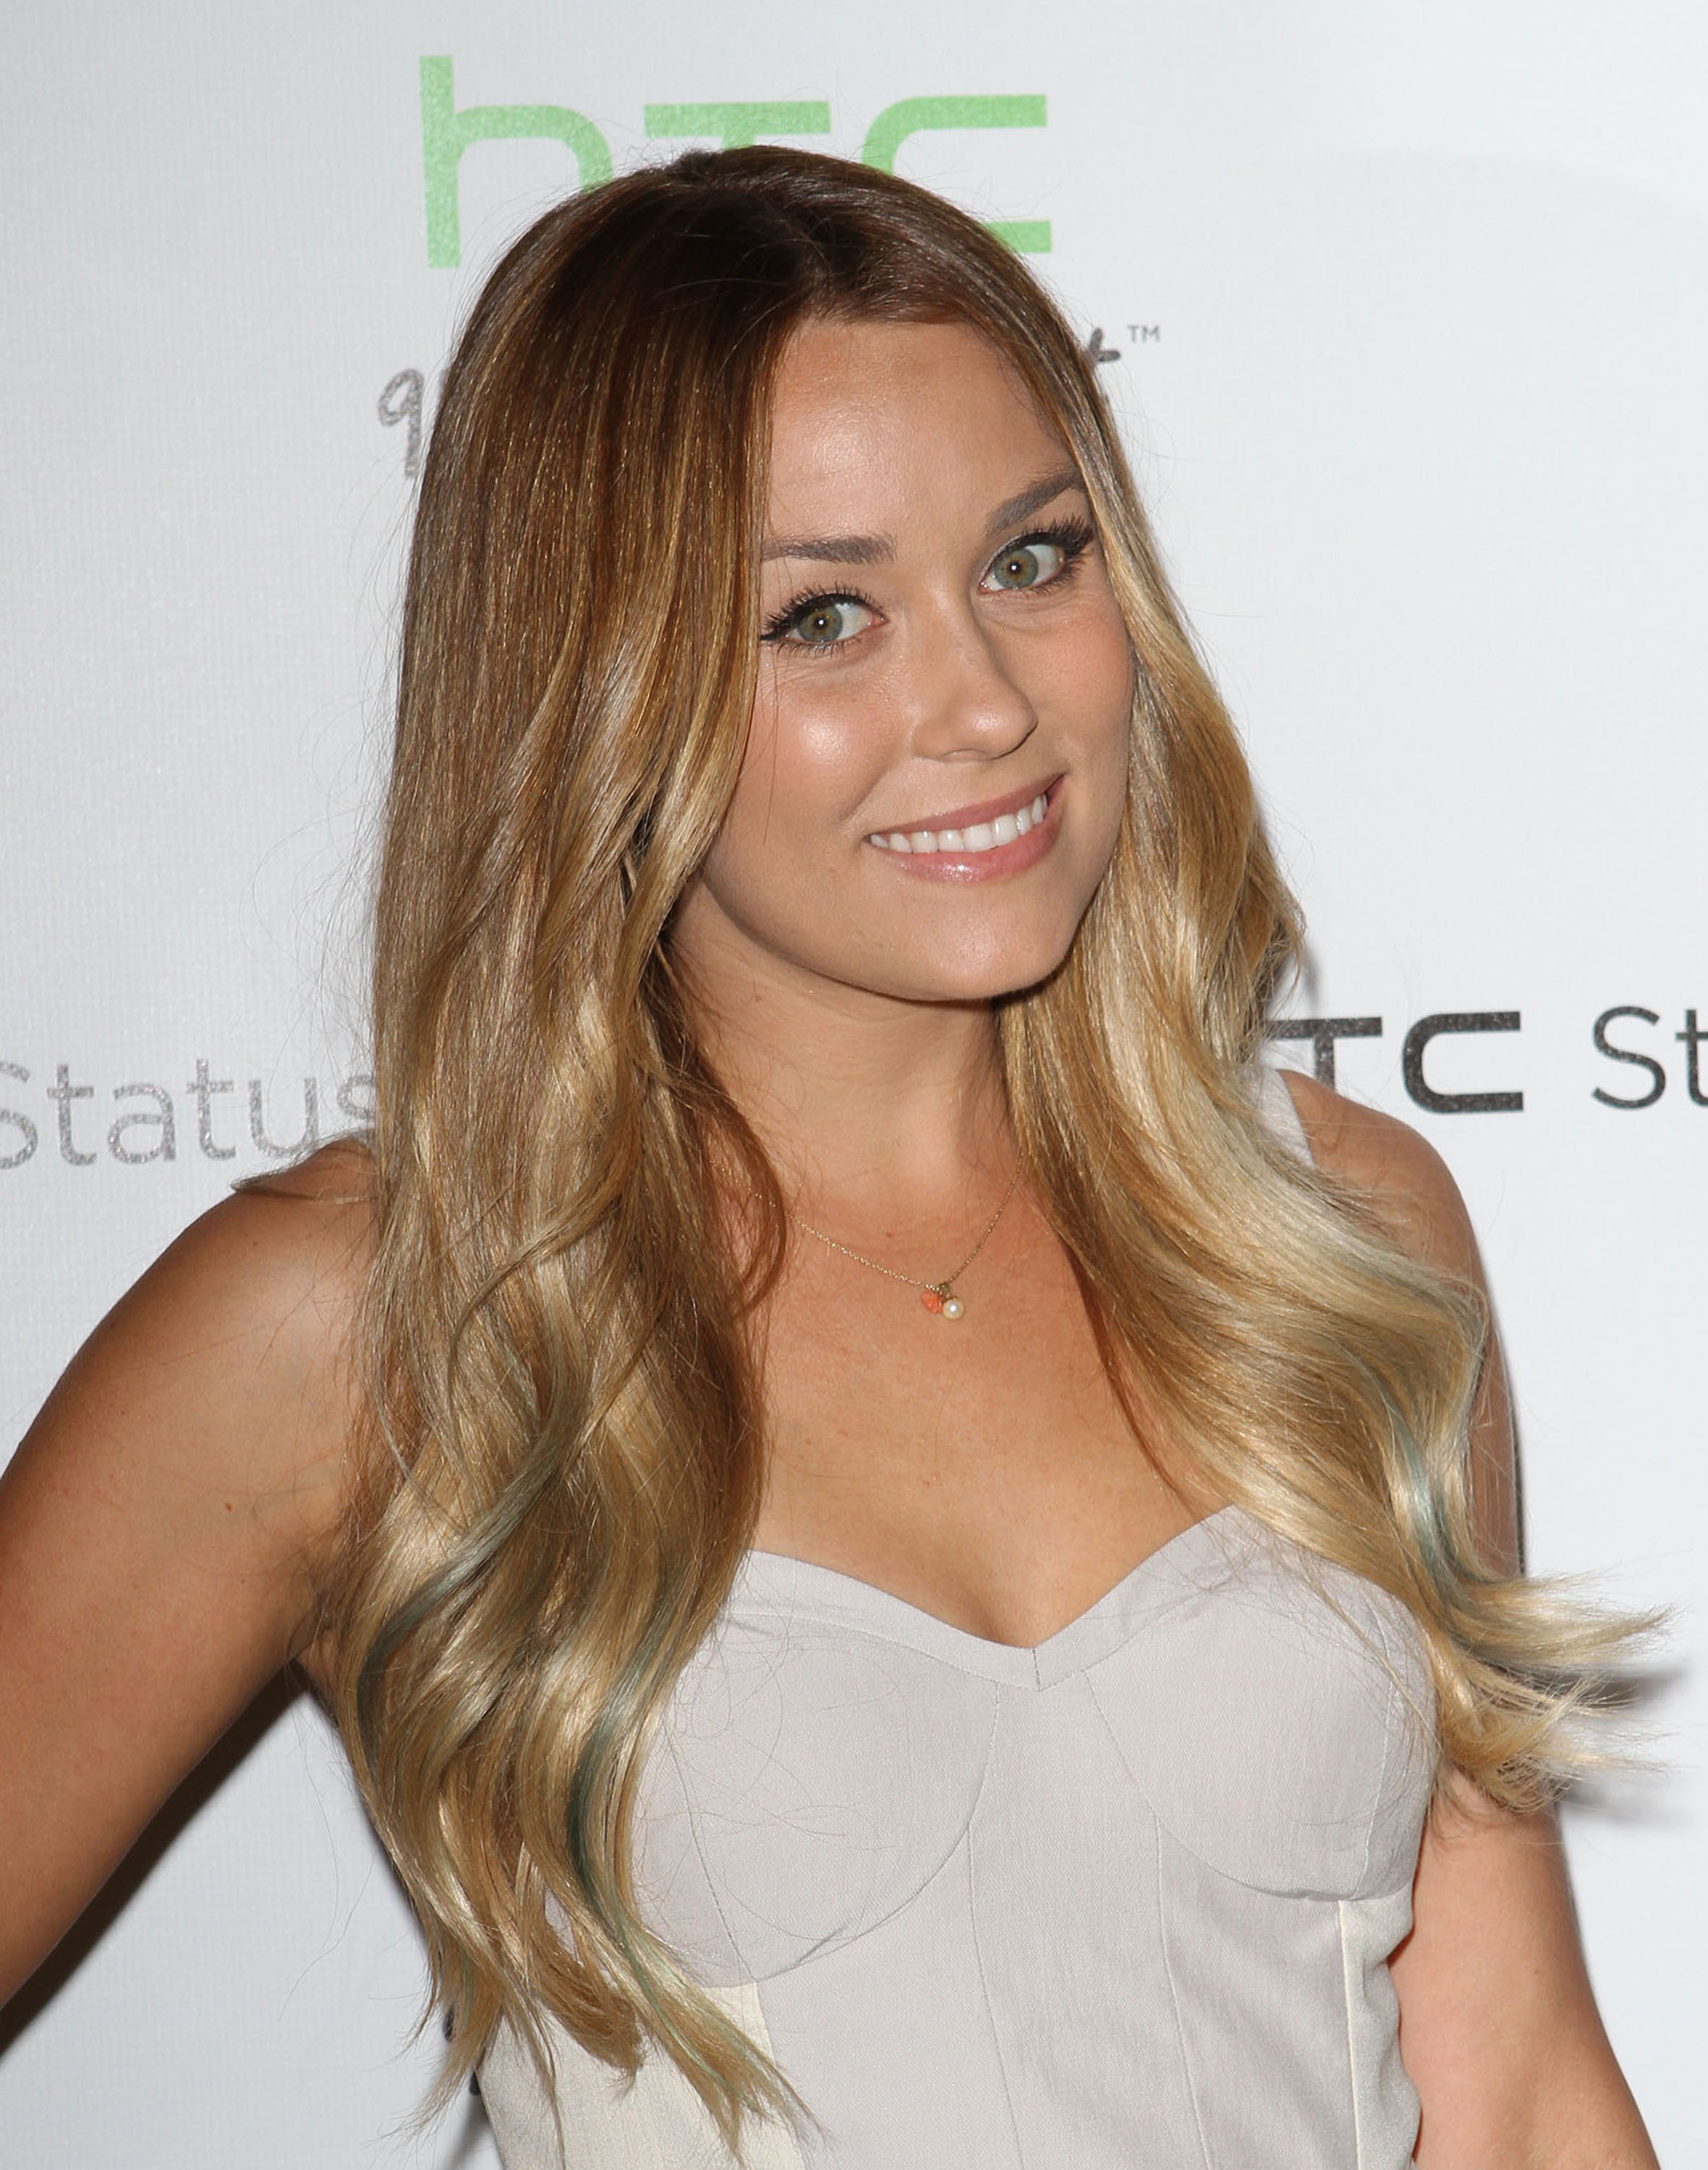 The following steps gave Lauren Conrad her hairstyle: